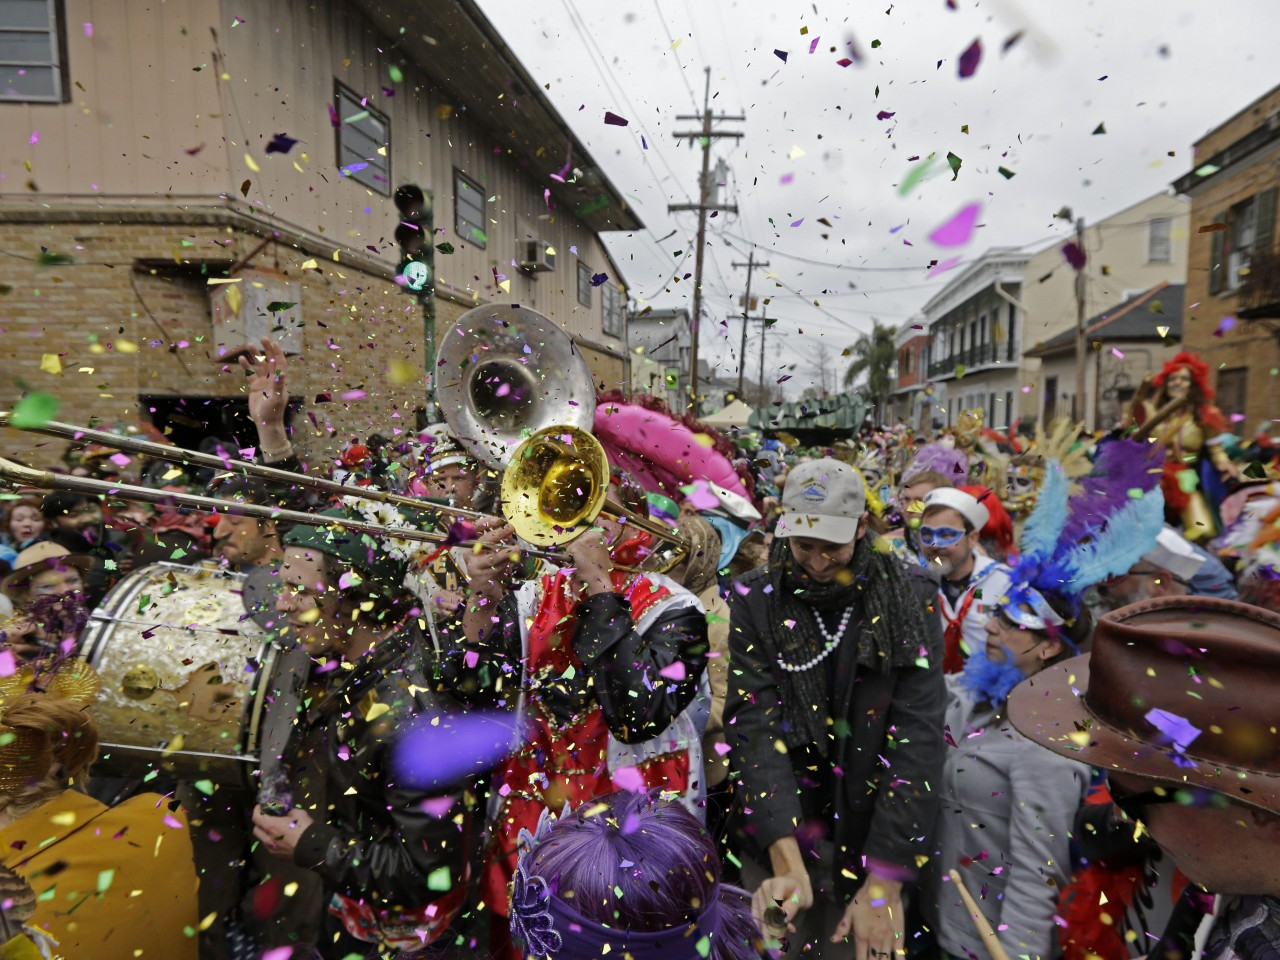 Mardi Gras in New Orleans: A day of parades, partying - Salon.com